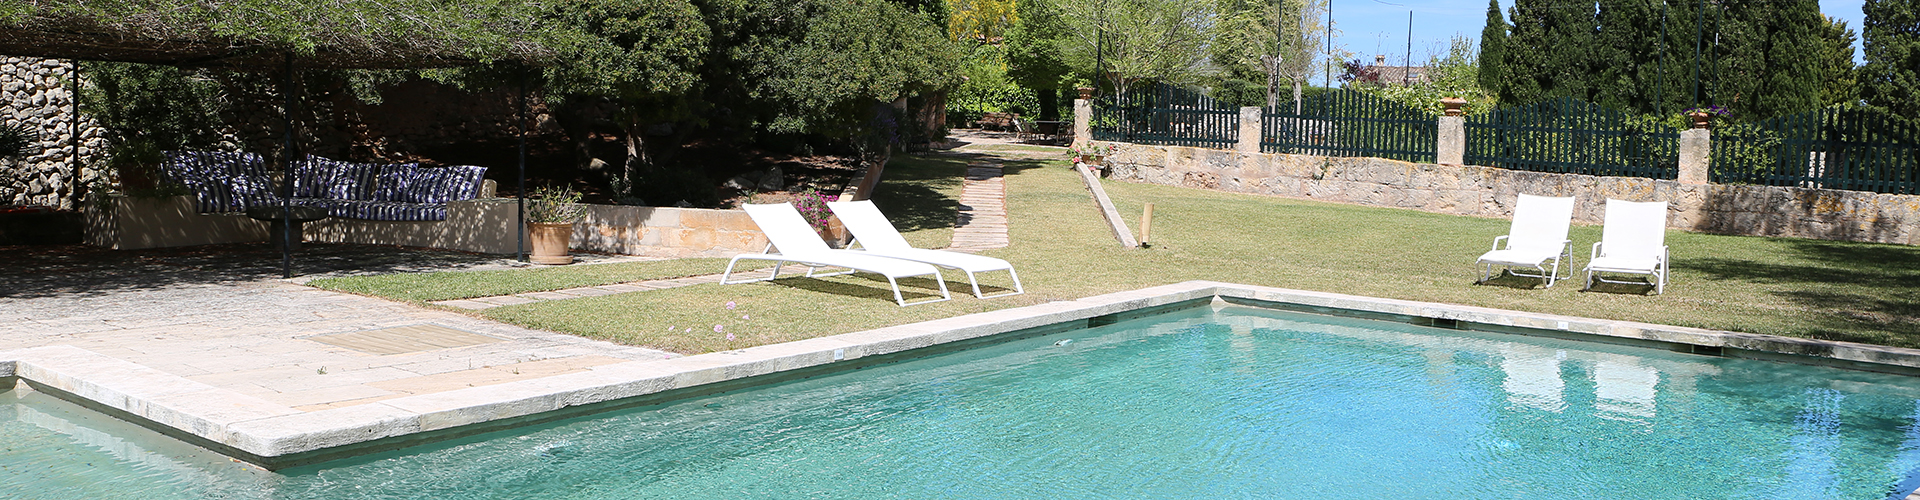 possessio-binicomprat-piscina-recorte-500